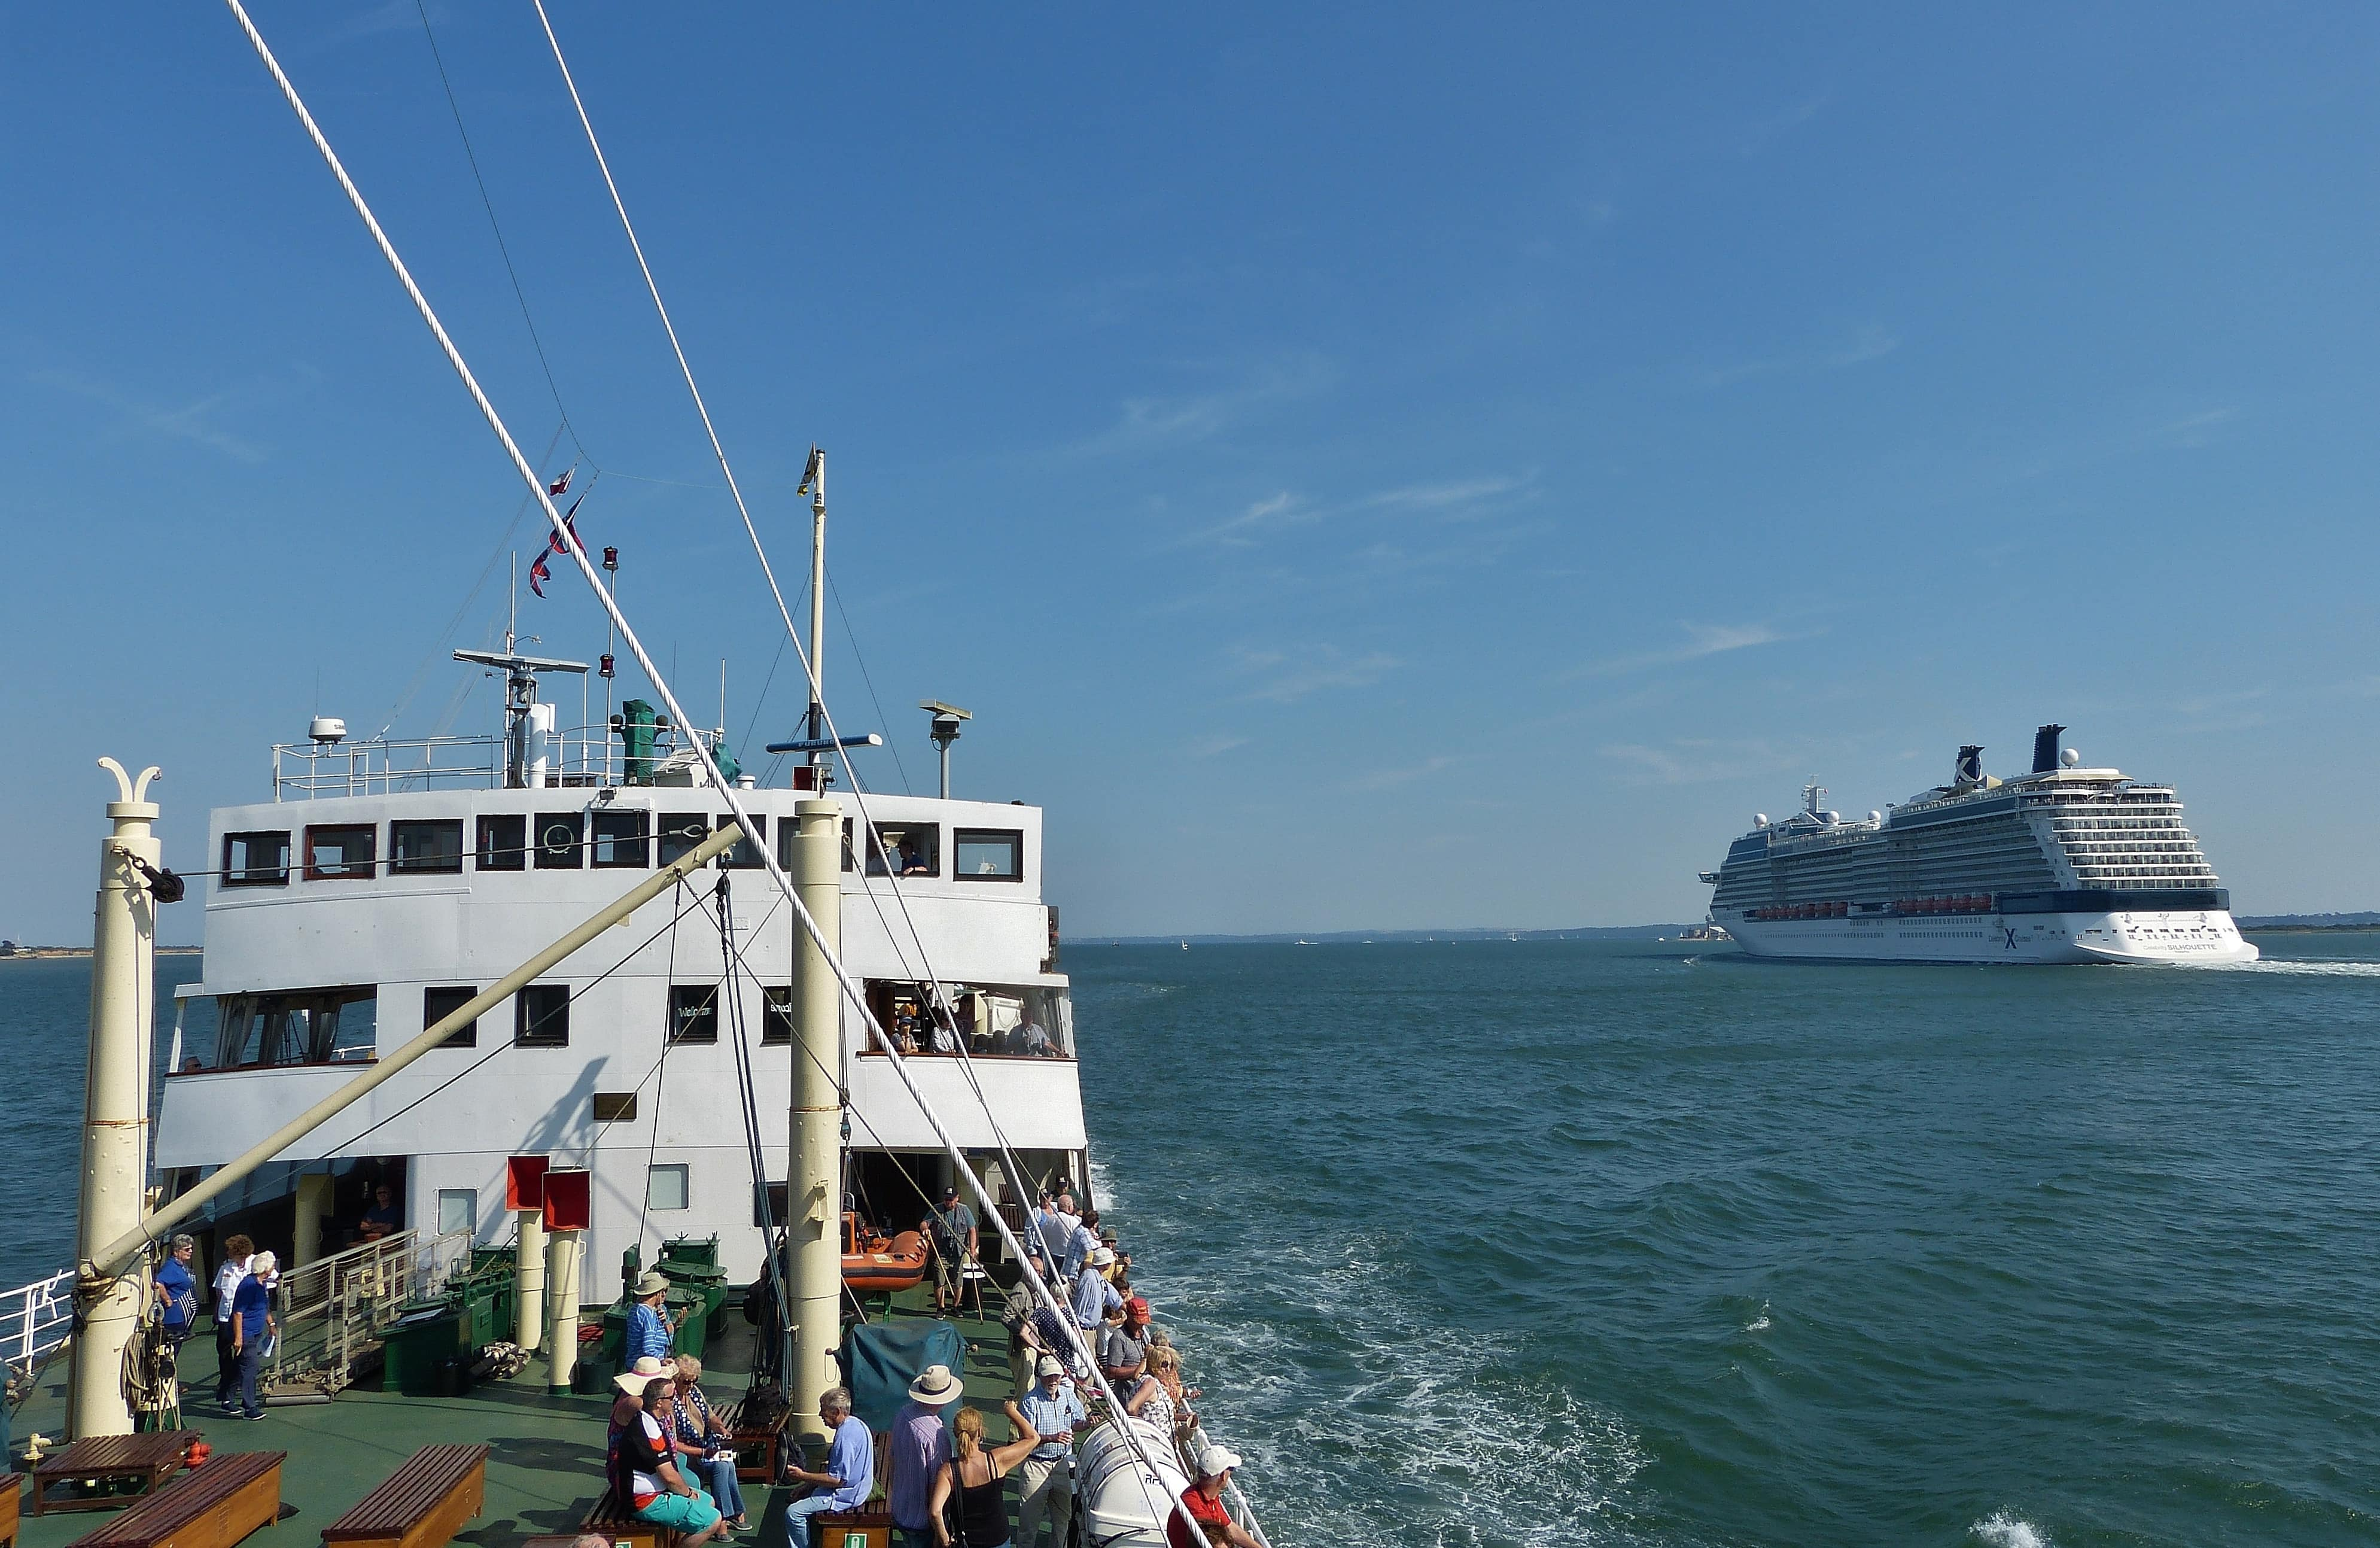 SS Shieldhall southampton celebrity cruises